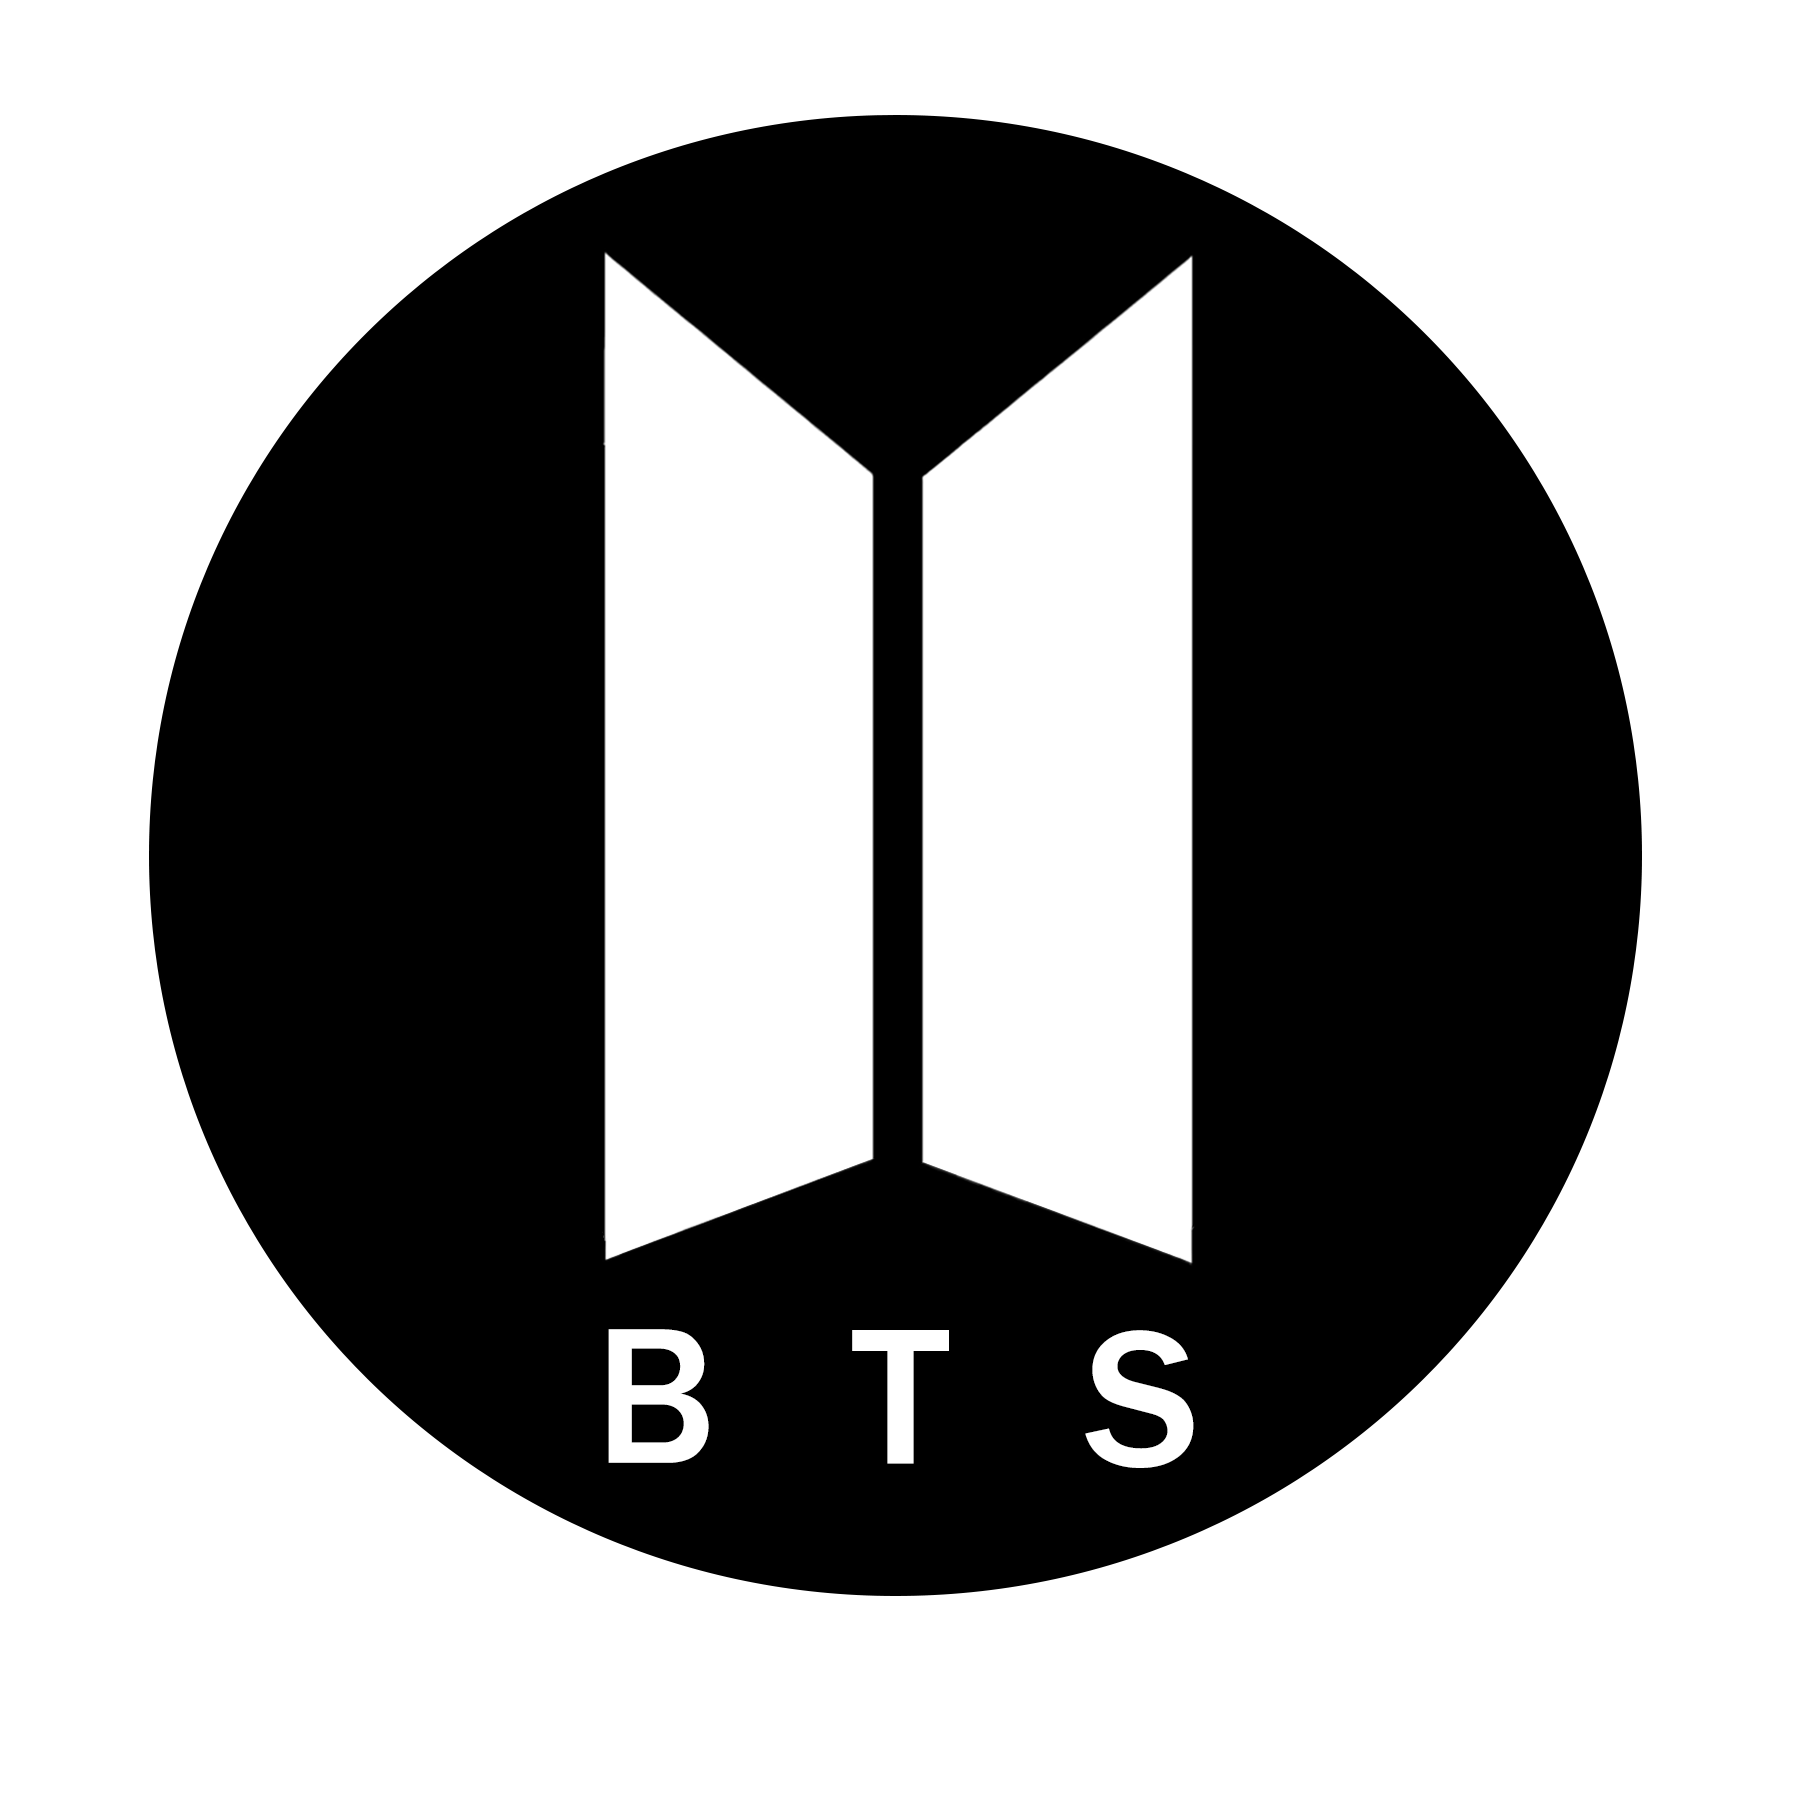 Army bts logo png. Explore more awesome logos